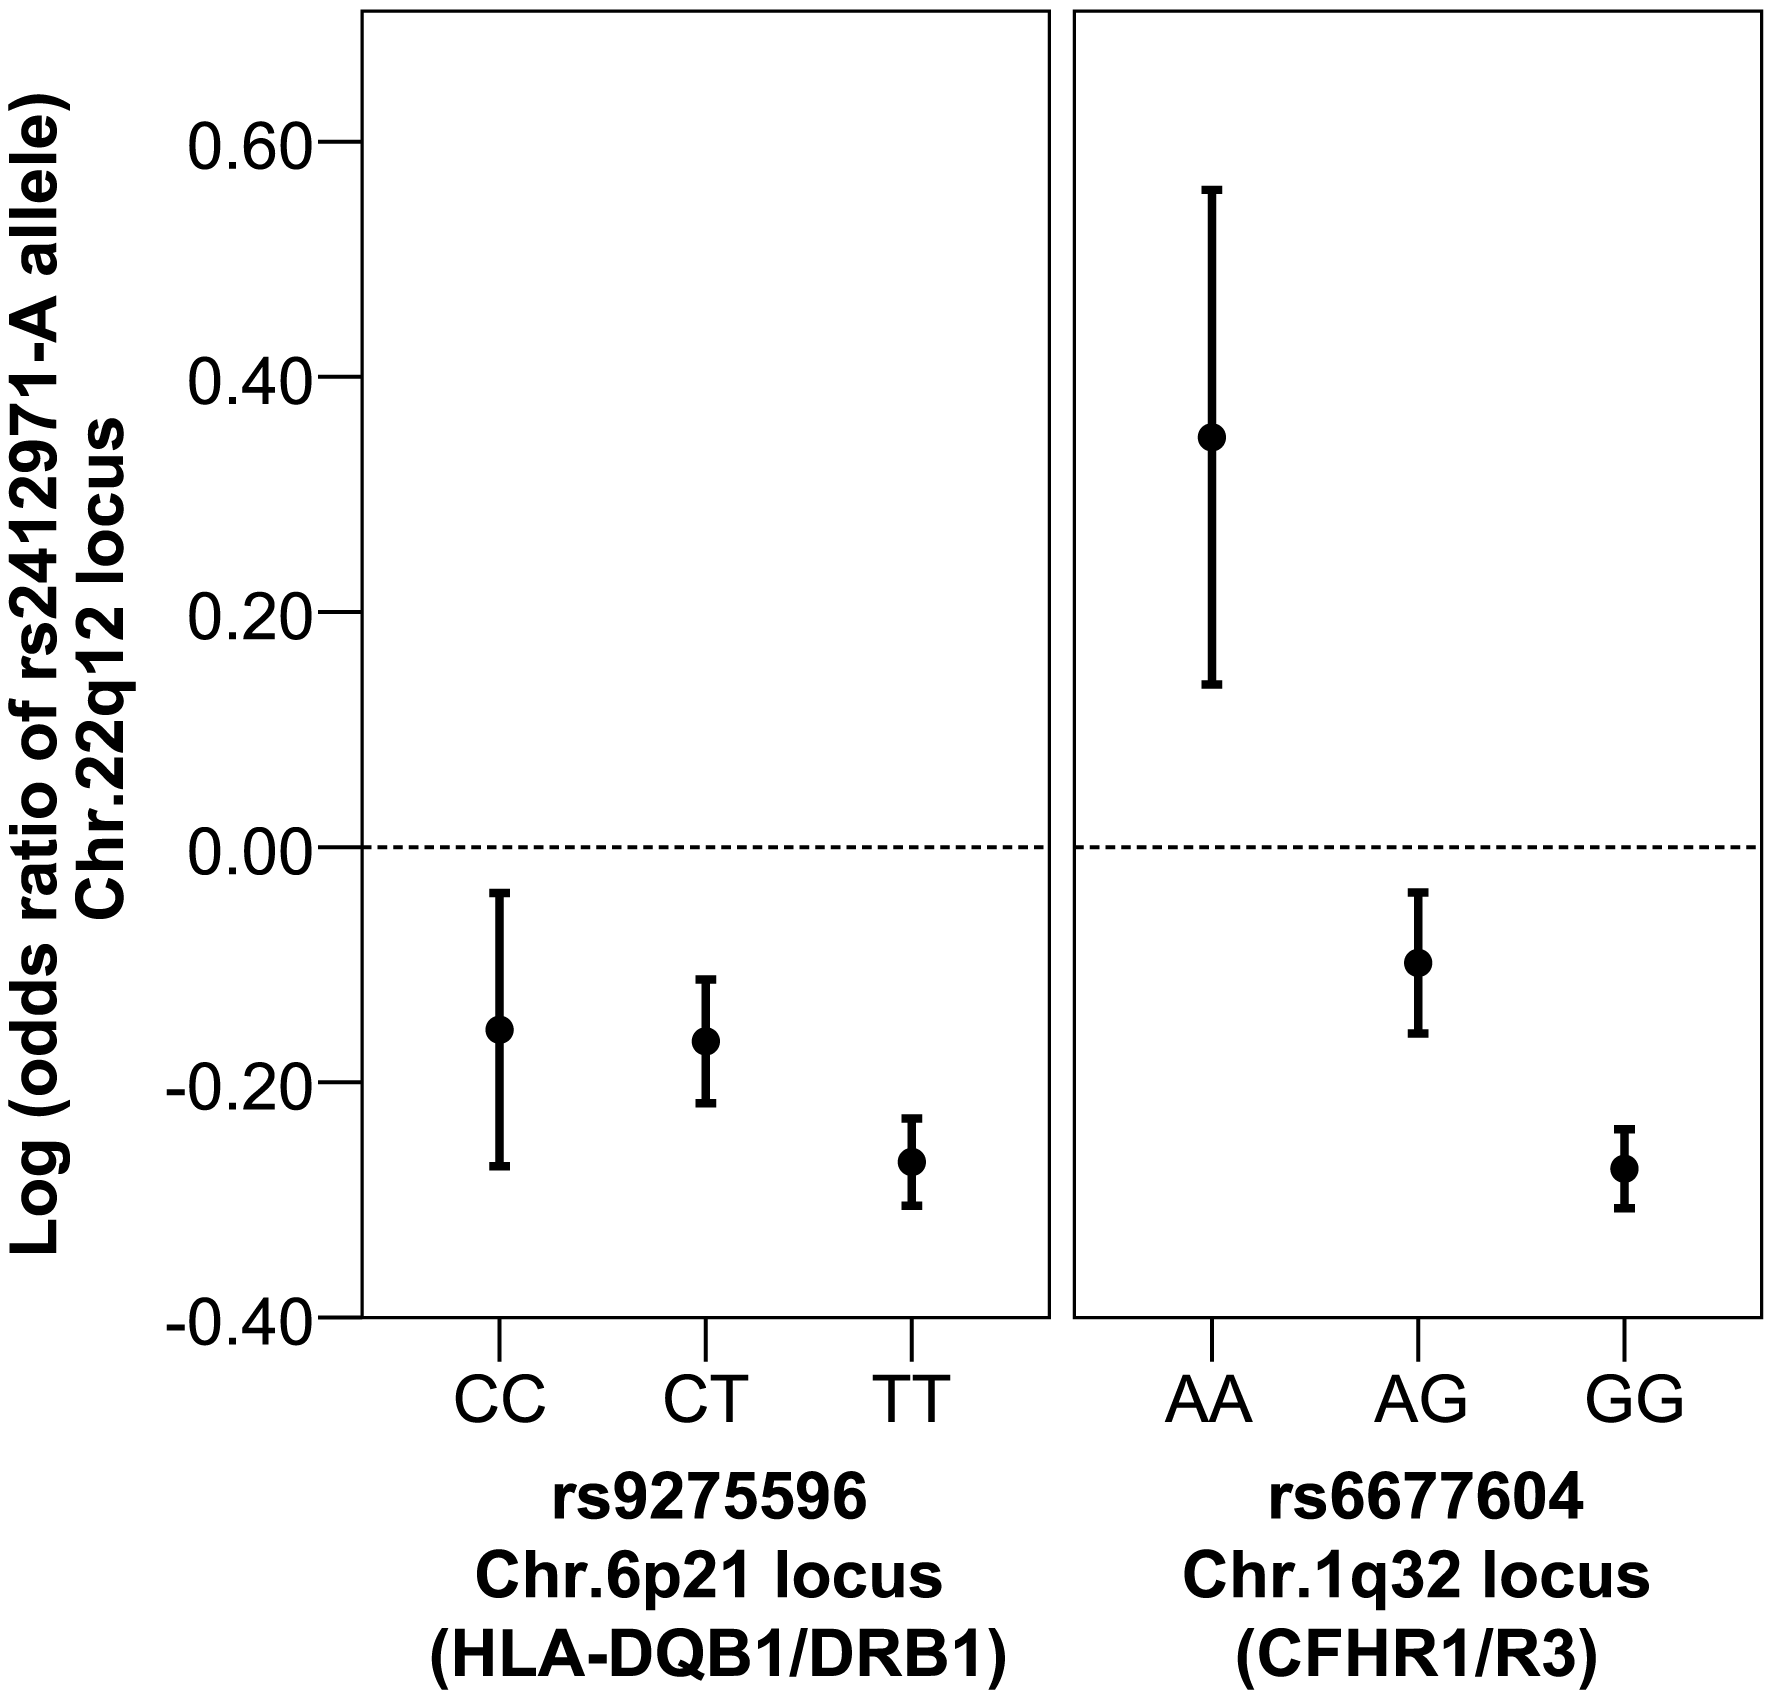 Multiplicative interaction between Chr. 22q12 (rs2412971) and Chr. 1q32 (rs6677604) loci.